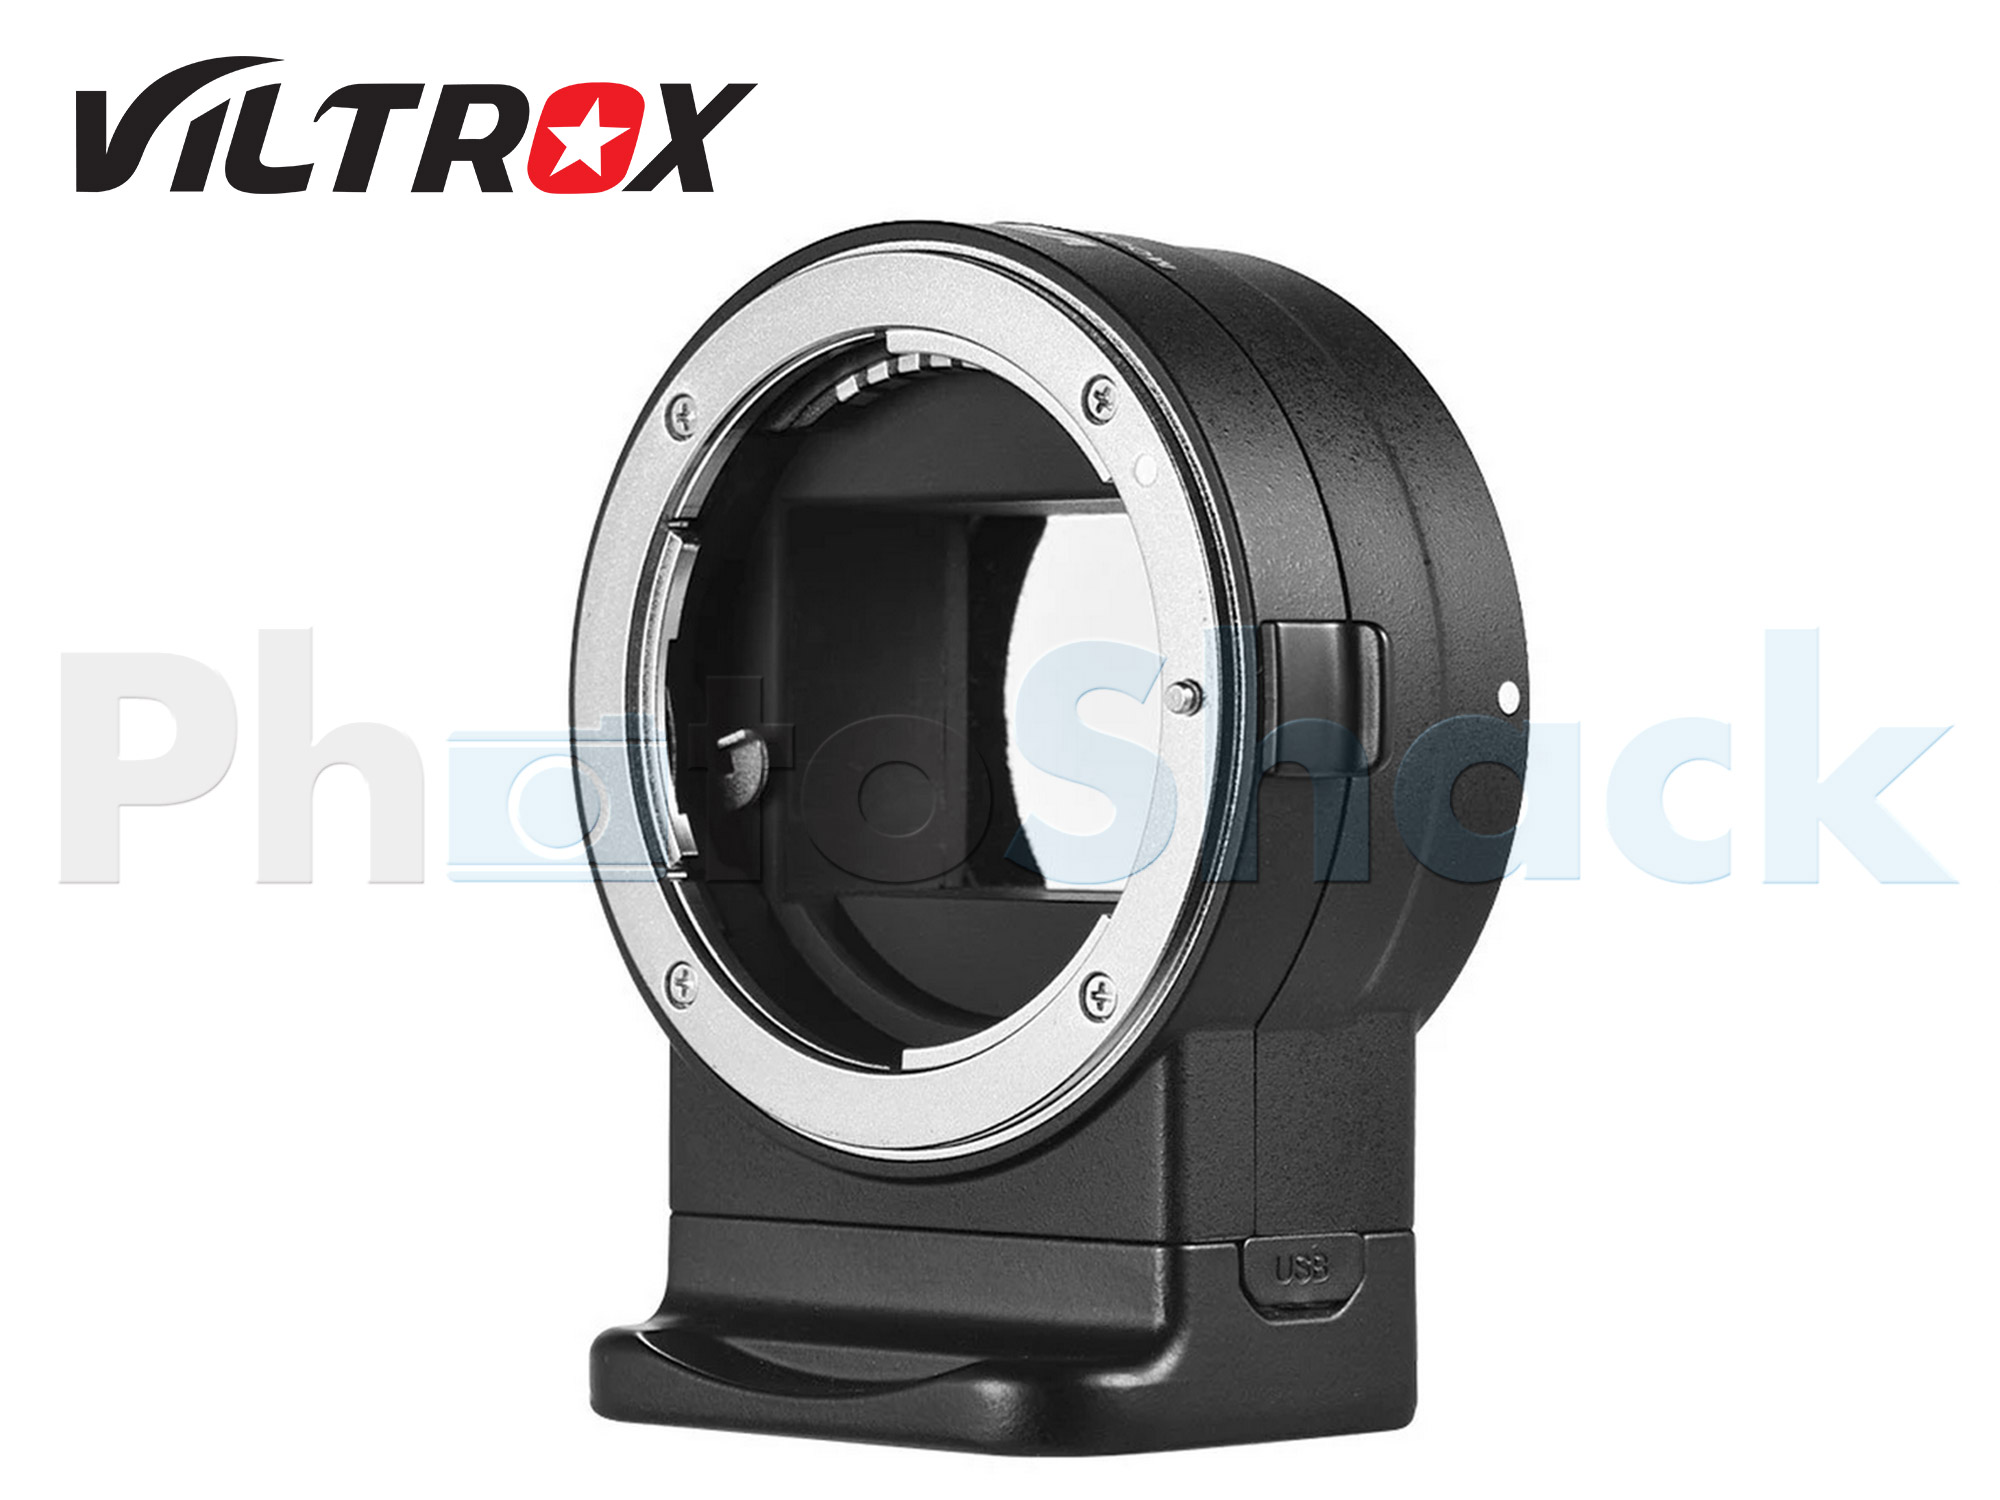 Viltrox NF-E1 Lens Mount Adapter Nikon F Lens for Sony E-mount